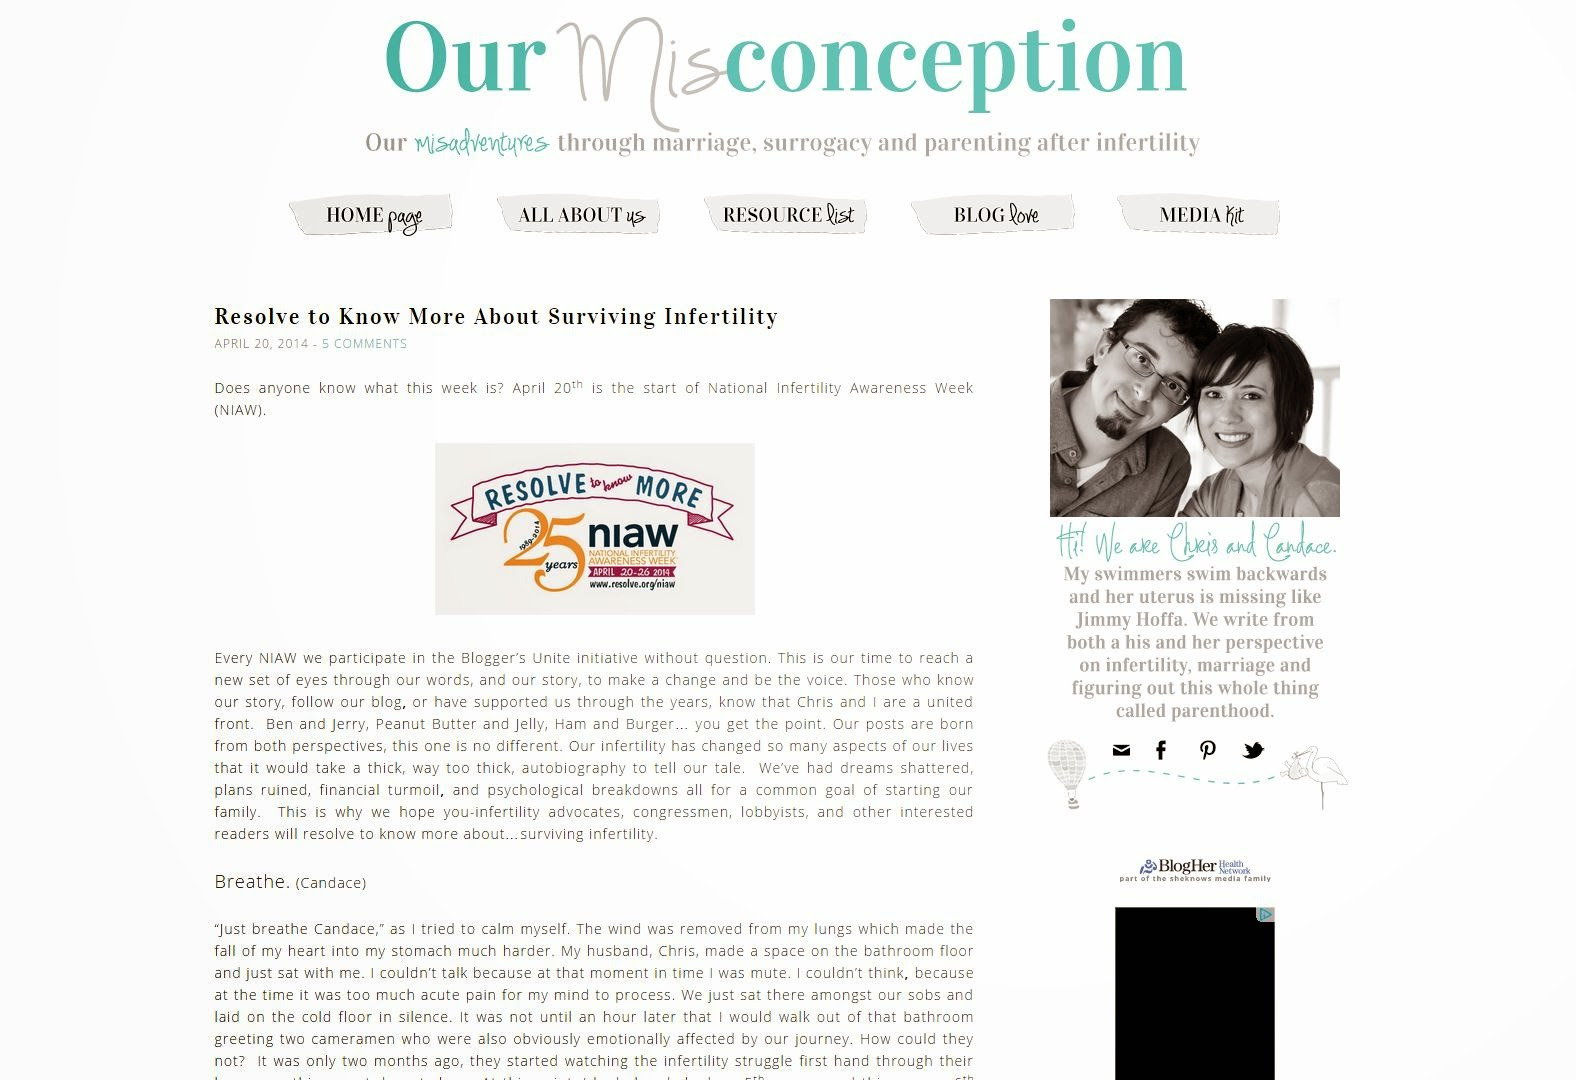 Our Misconception: Resolve to Know More About Surviving Infertility